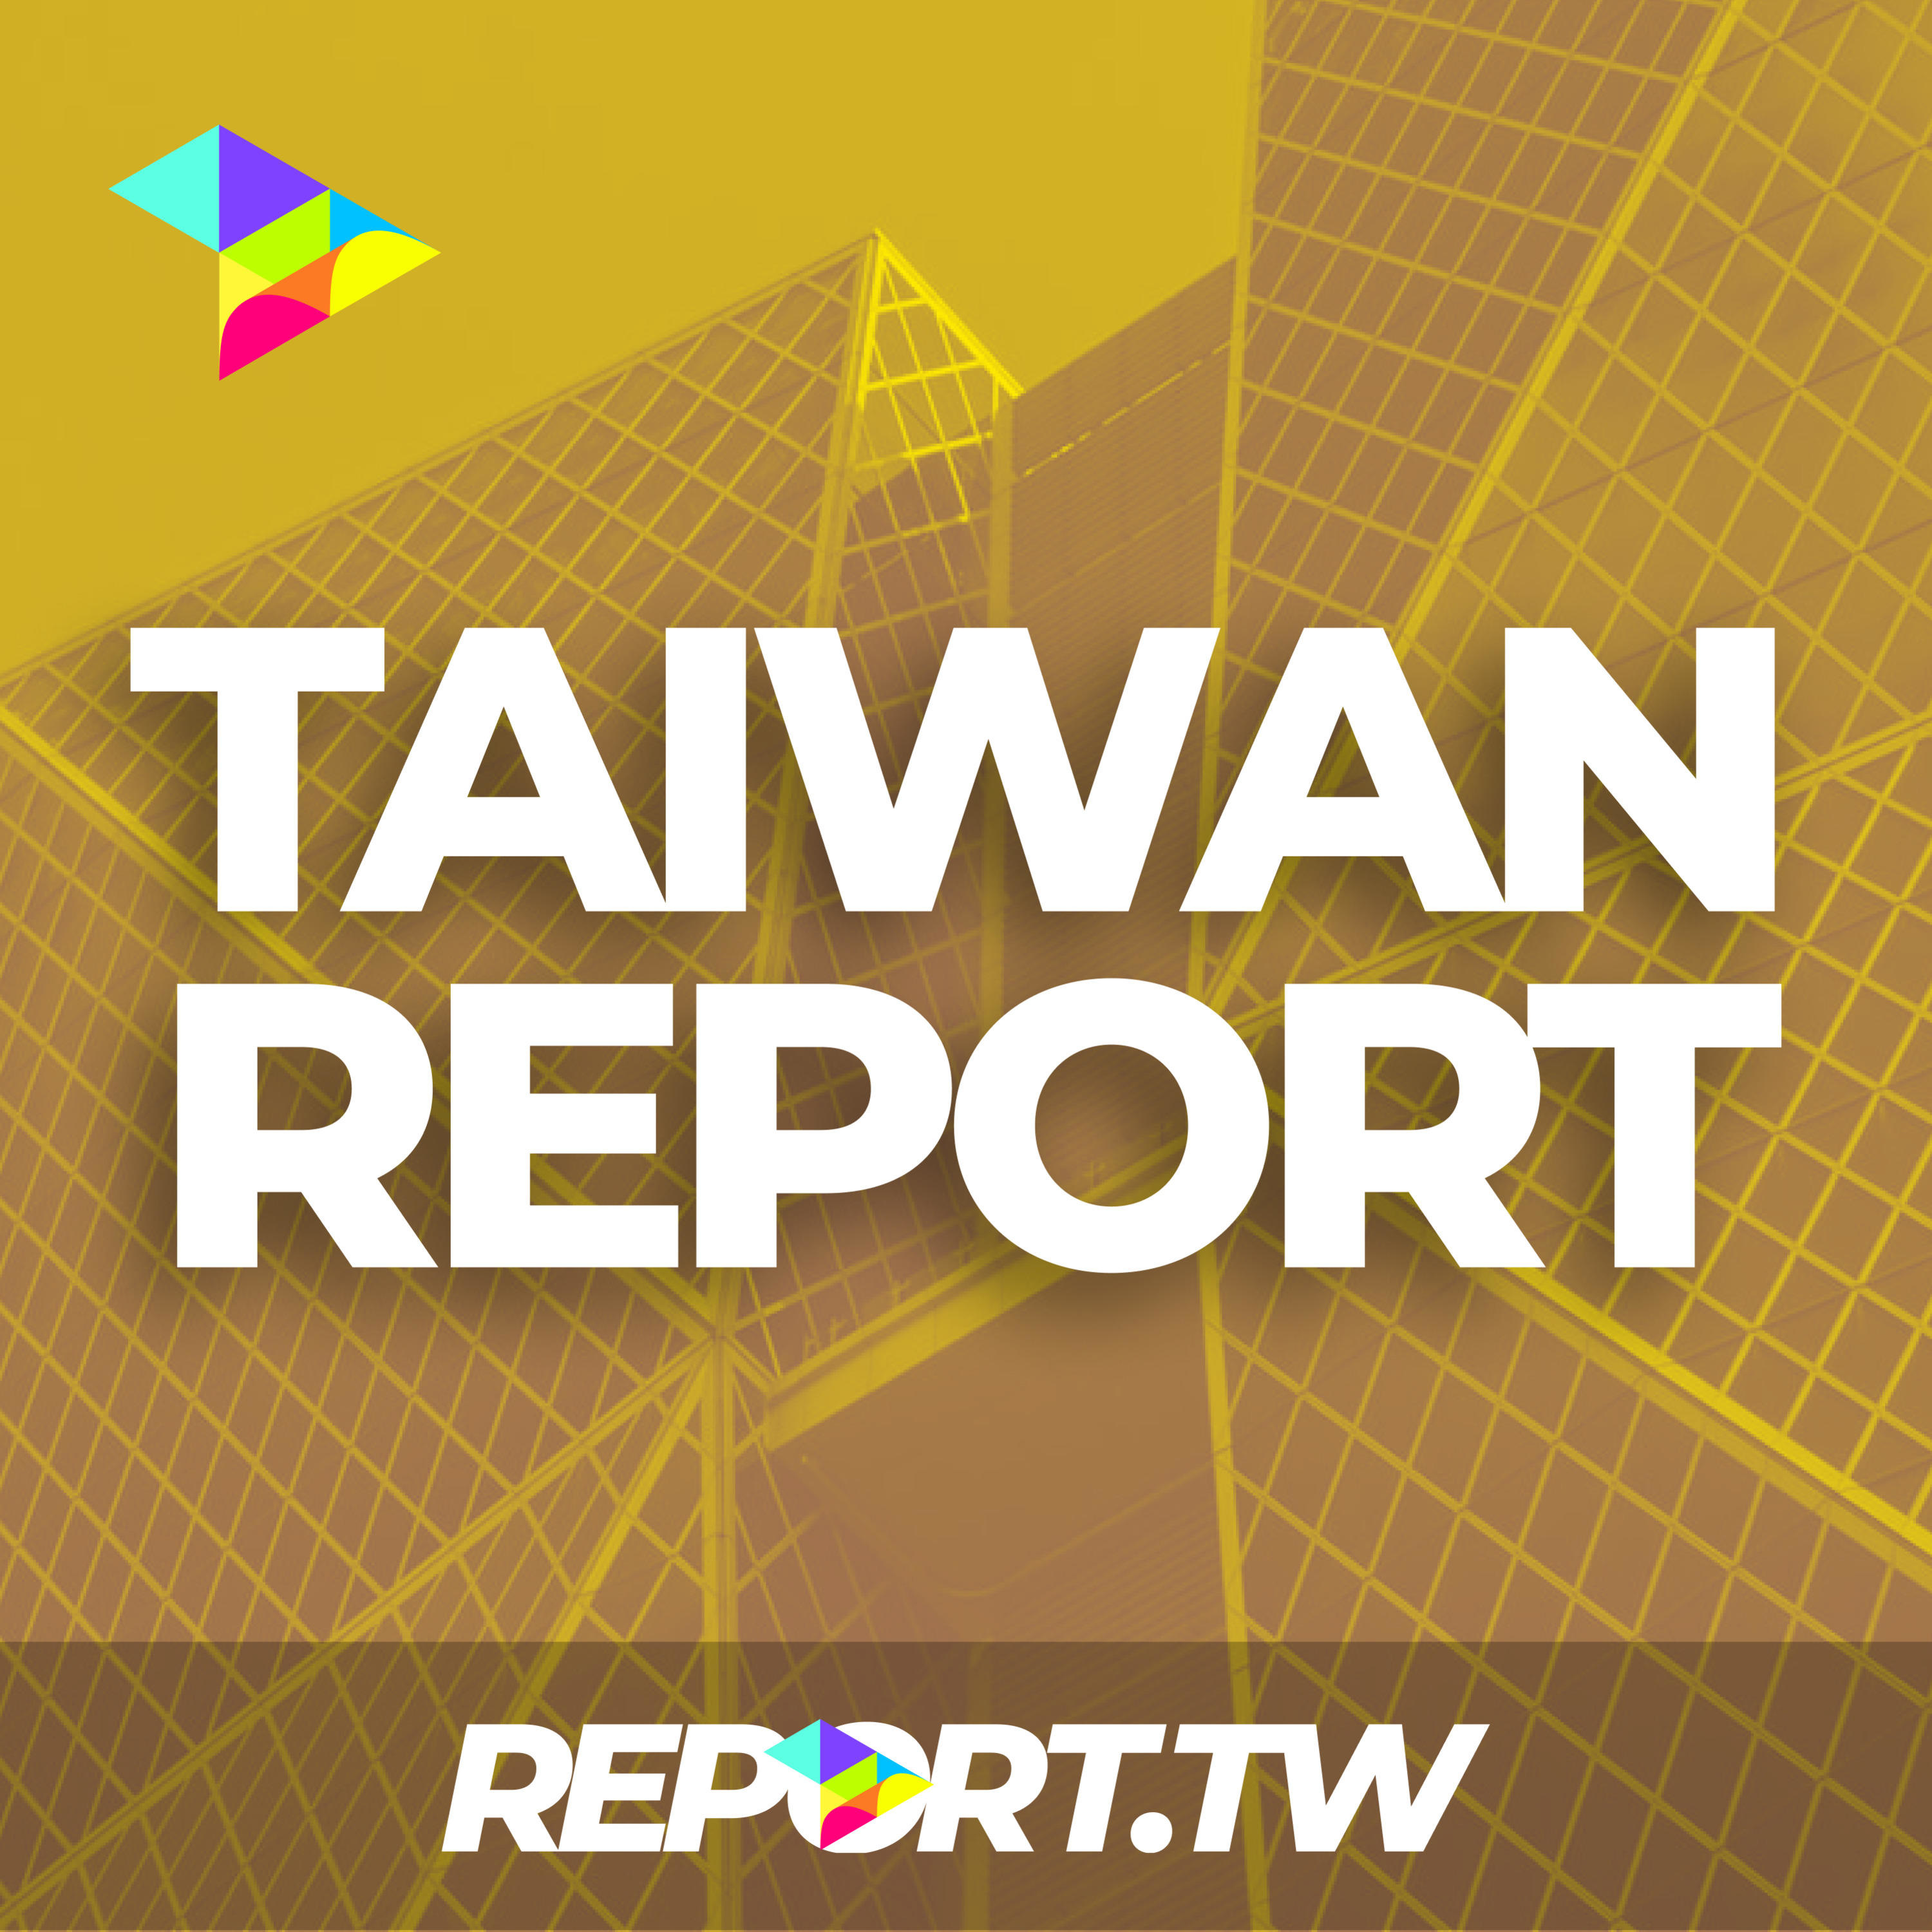 Taiwan Report News Brief (03-21-2020) Carrots and Sticks from the NIA